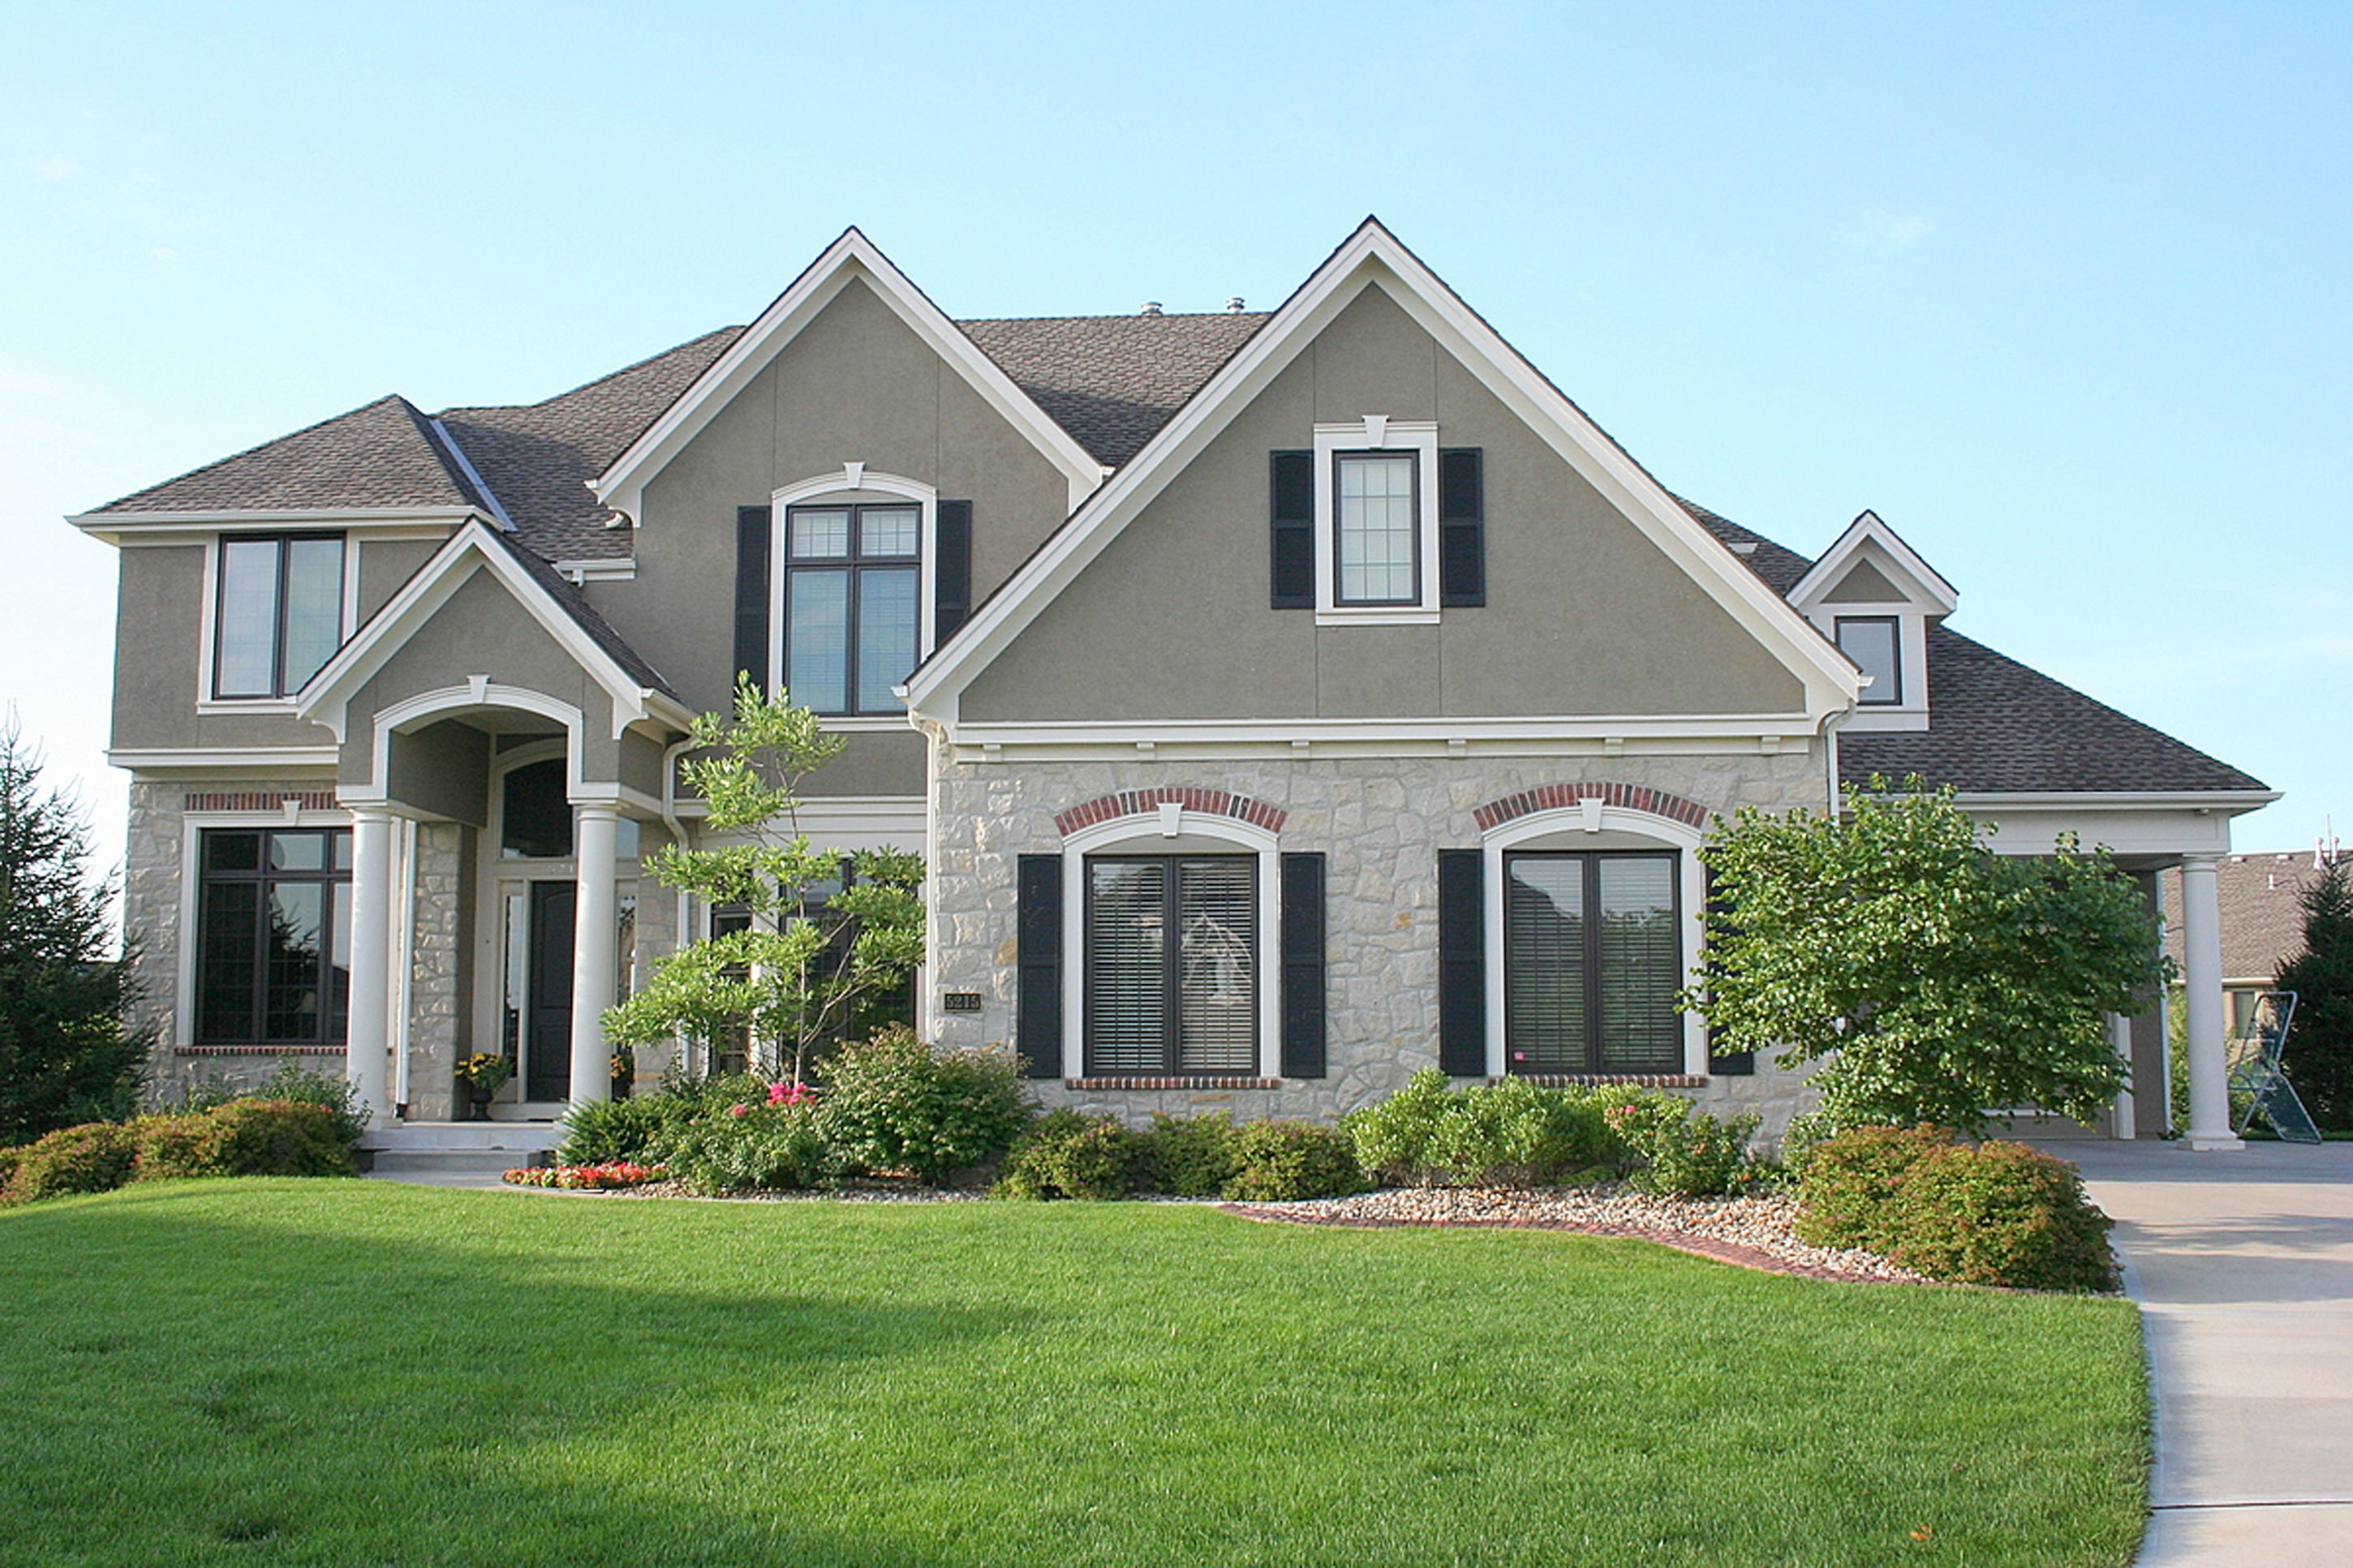 House Design Chic House Design Inspiration With White Gray Wall Black Window Frames And Green Yard Cool Ho Stone Exterior Houses House Exterior Beautiful Homes